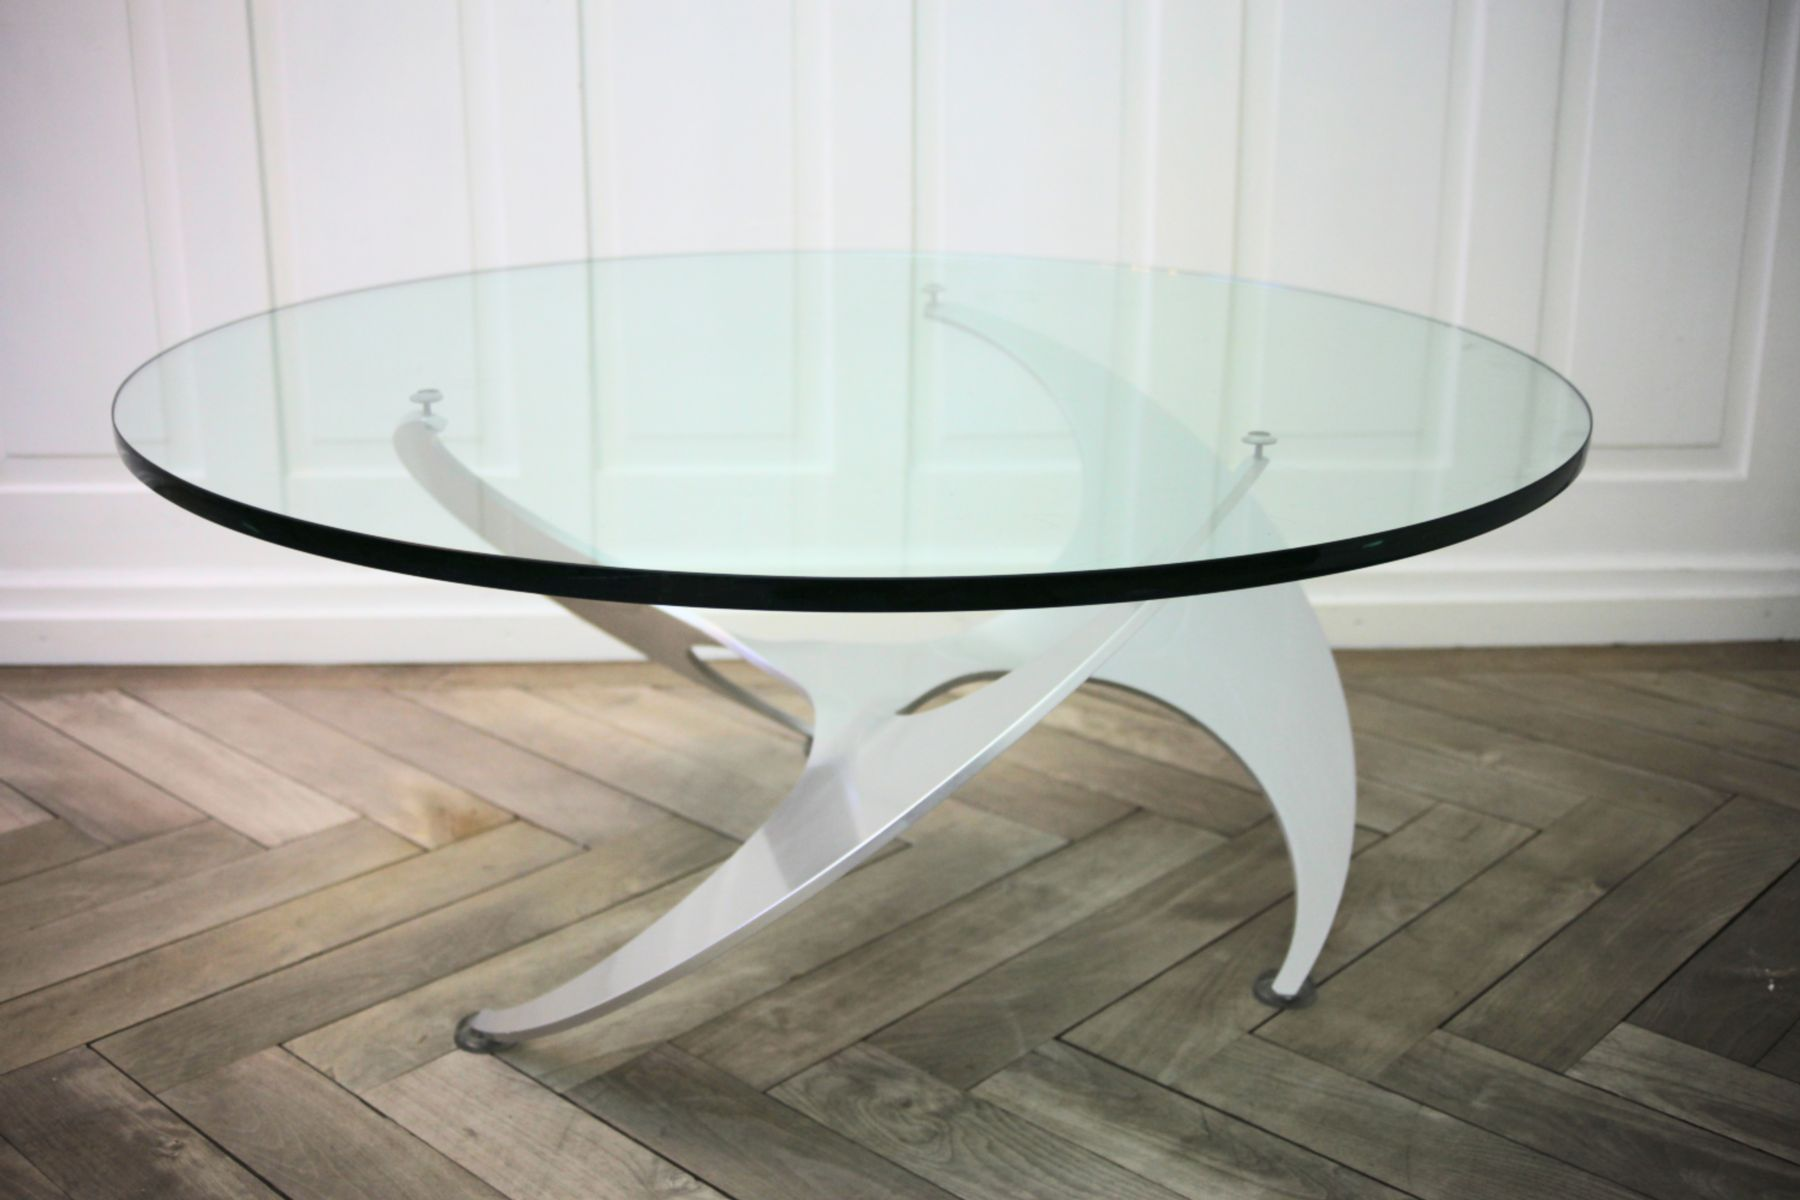 mid century propeller coffee table by knut hesterberg for ronald schmitt 1960s bei pamono kaufen. Black Bedroom Furniture Sets. Home Design Ideas